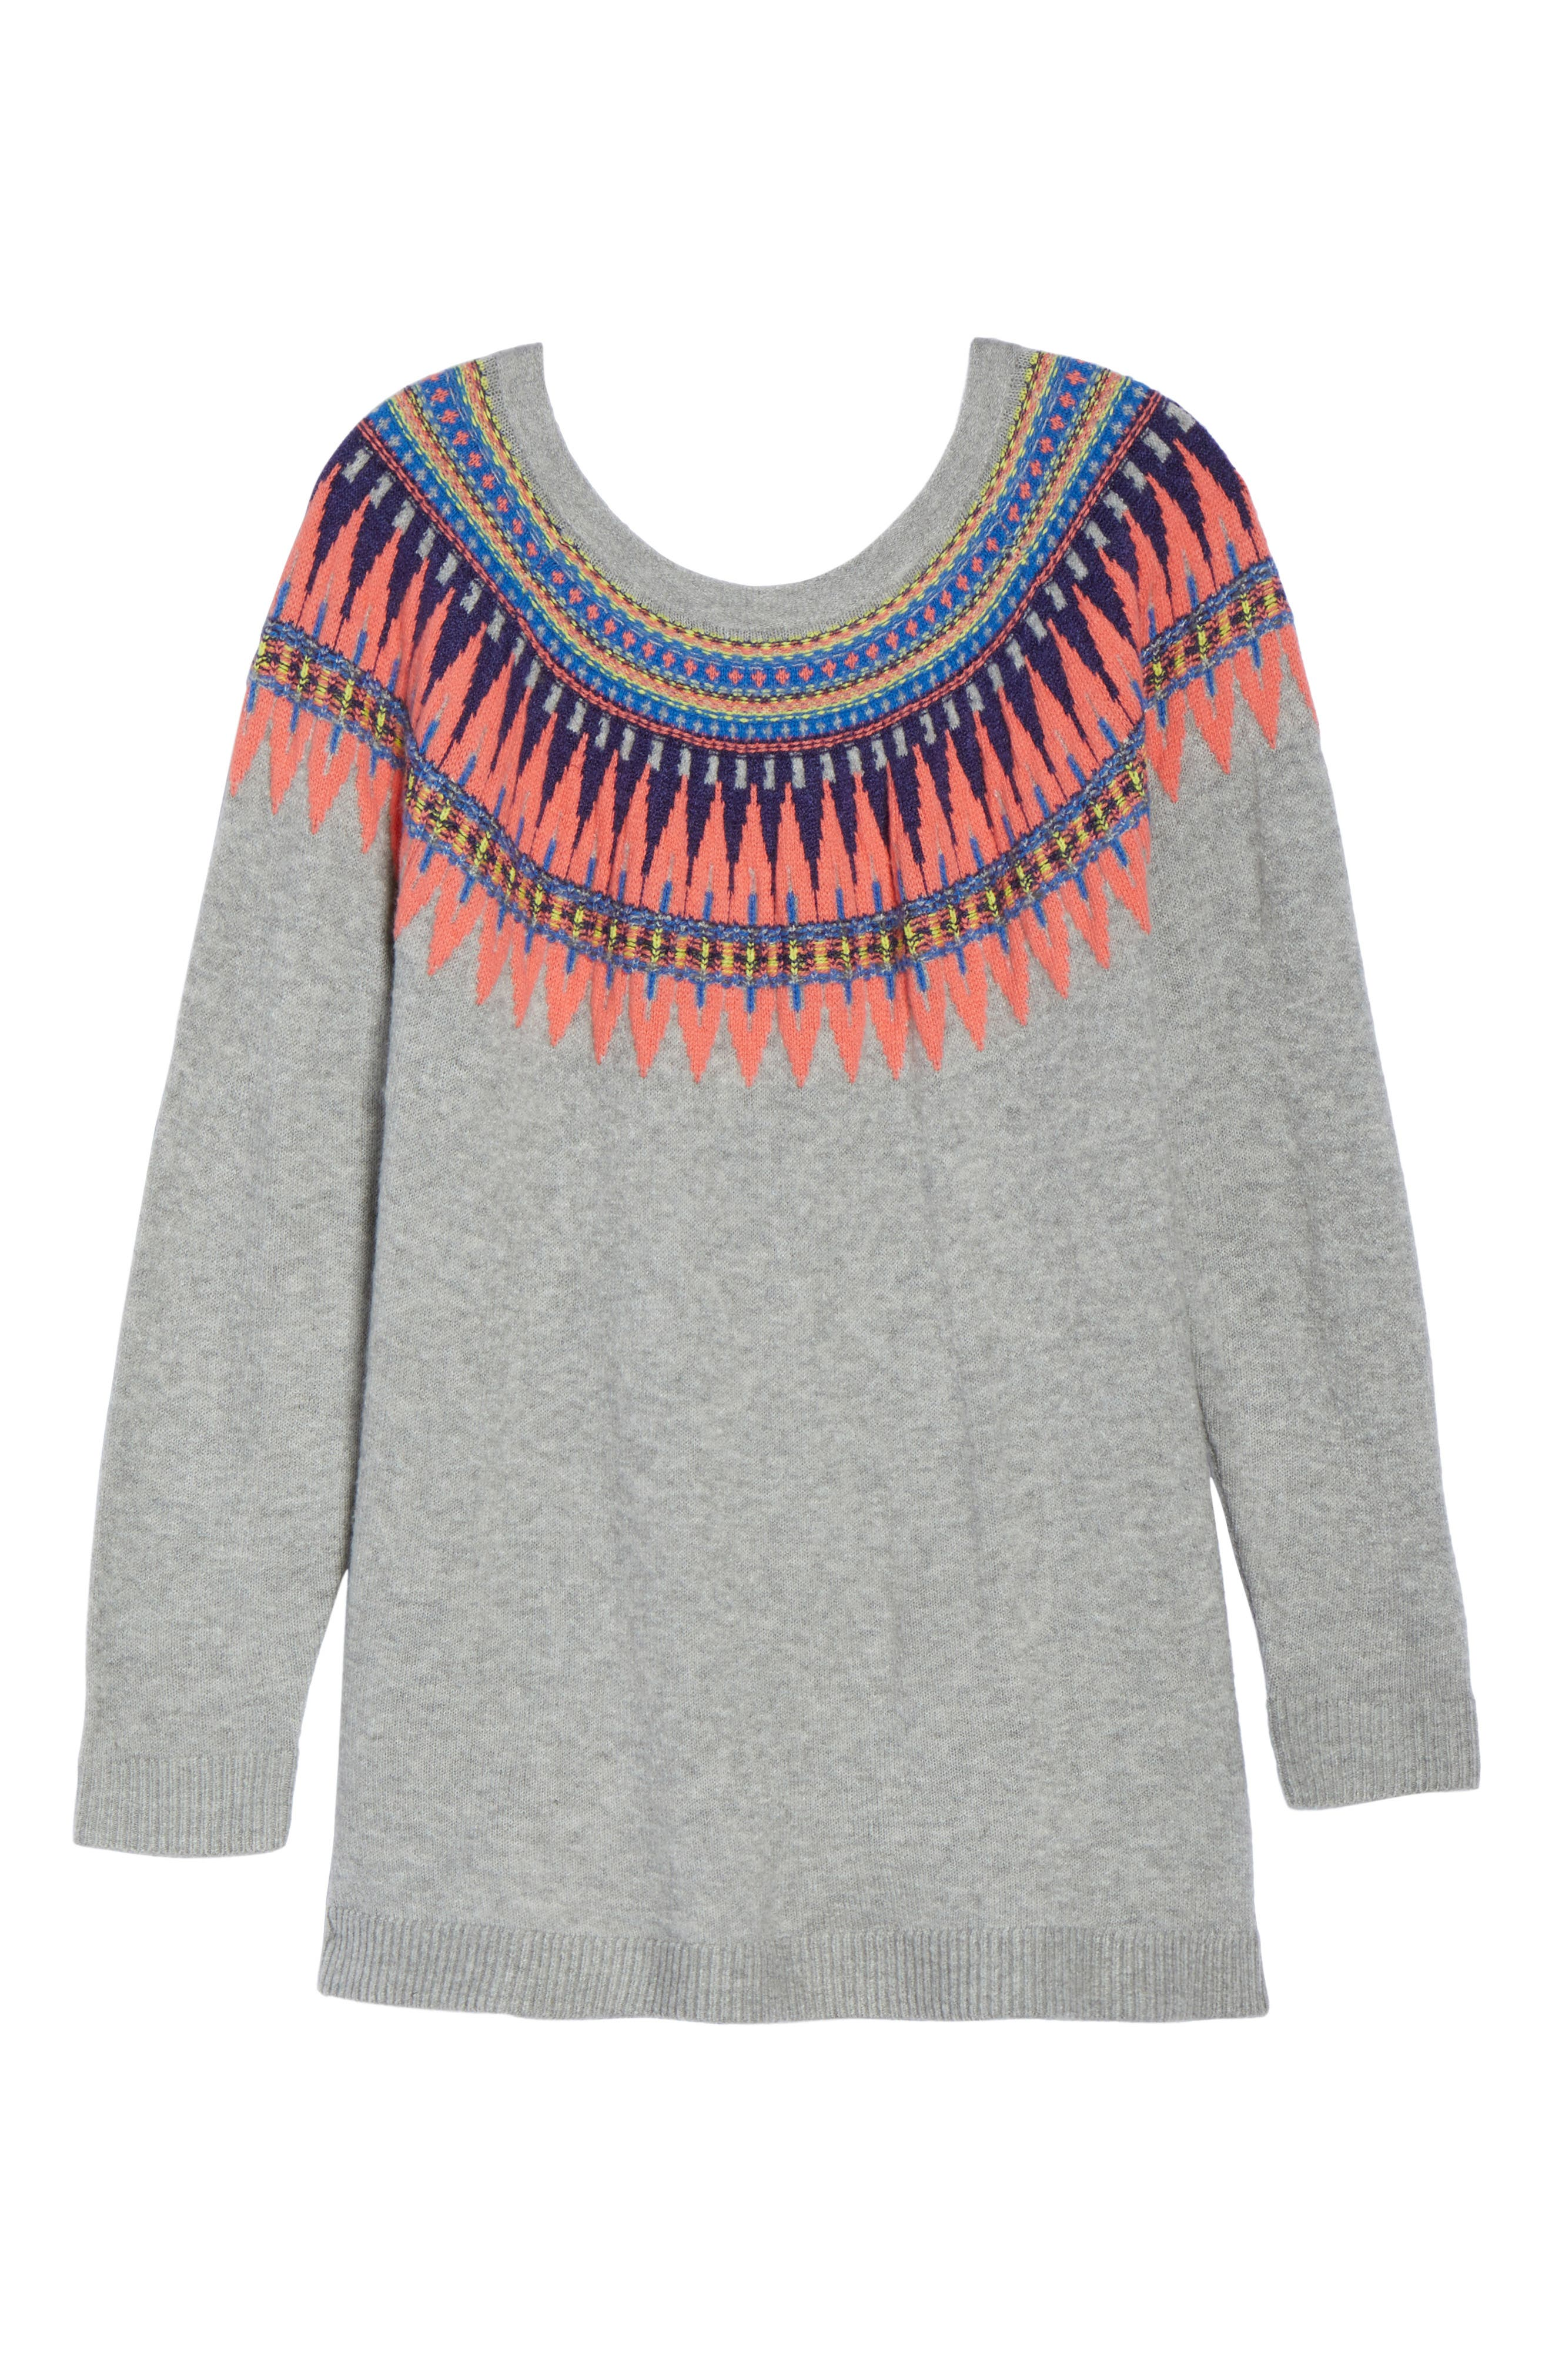 Tie Back Patterned Sweater,                             Alternate thumbnail 6, color,                             030